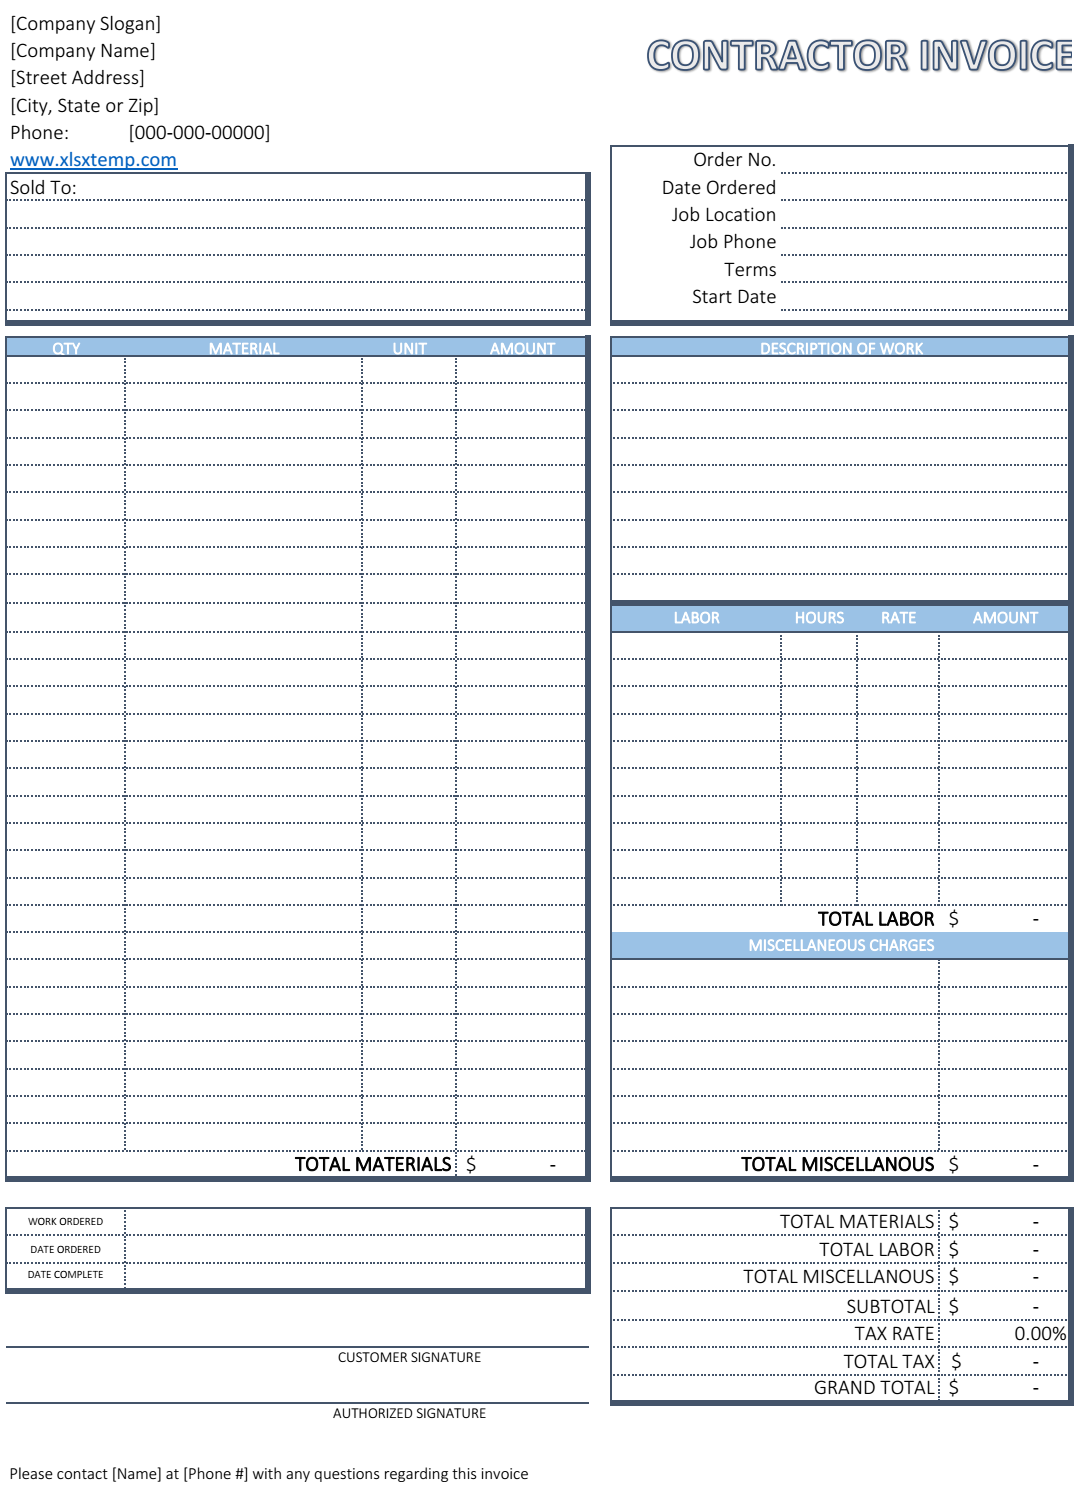 Free Contractor Invoice Template  Excel Business Invoices